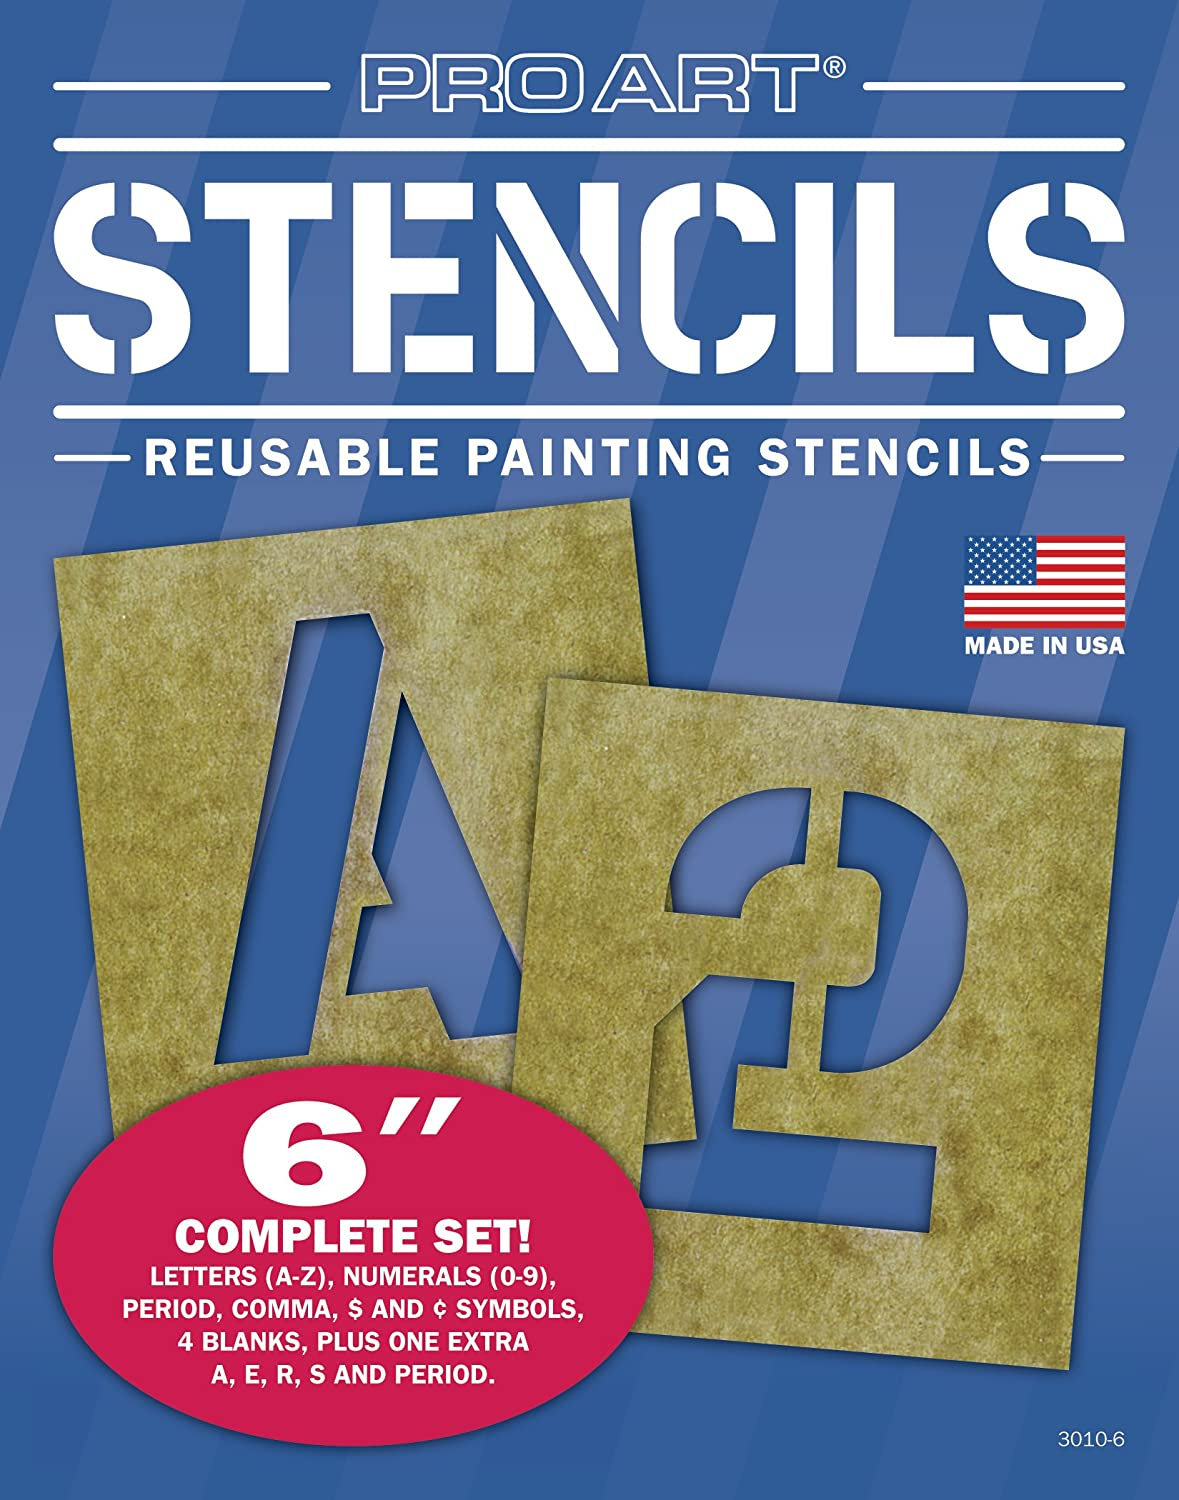 letter and number stencils for painting pro 6 inch painting stencil set letters and numbers 24227 | 814DMwPw8vL. SL1500